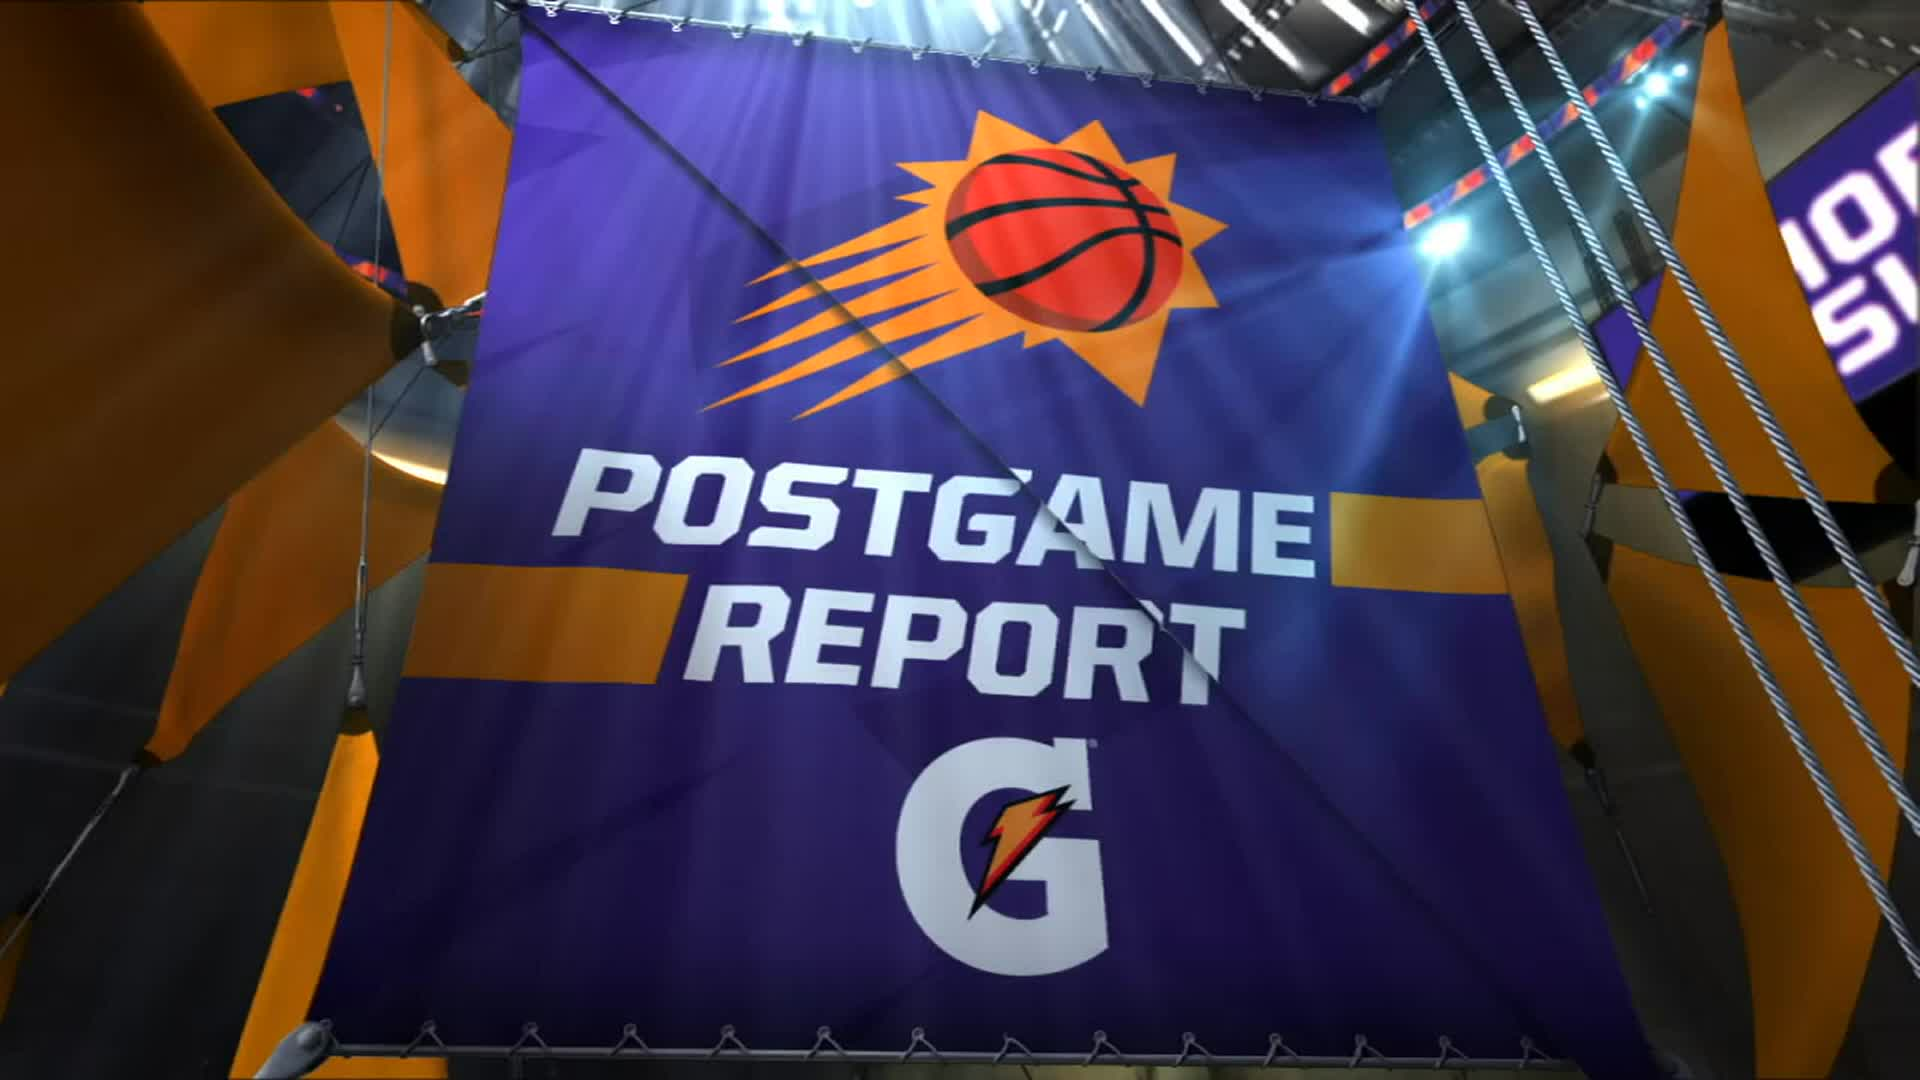 Gatorade Postgame Report: Suns vs. Clippers 2020-21